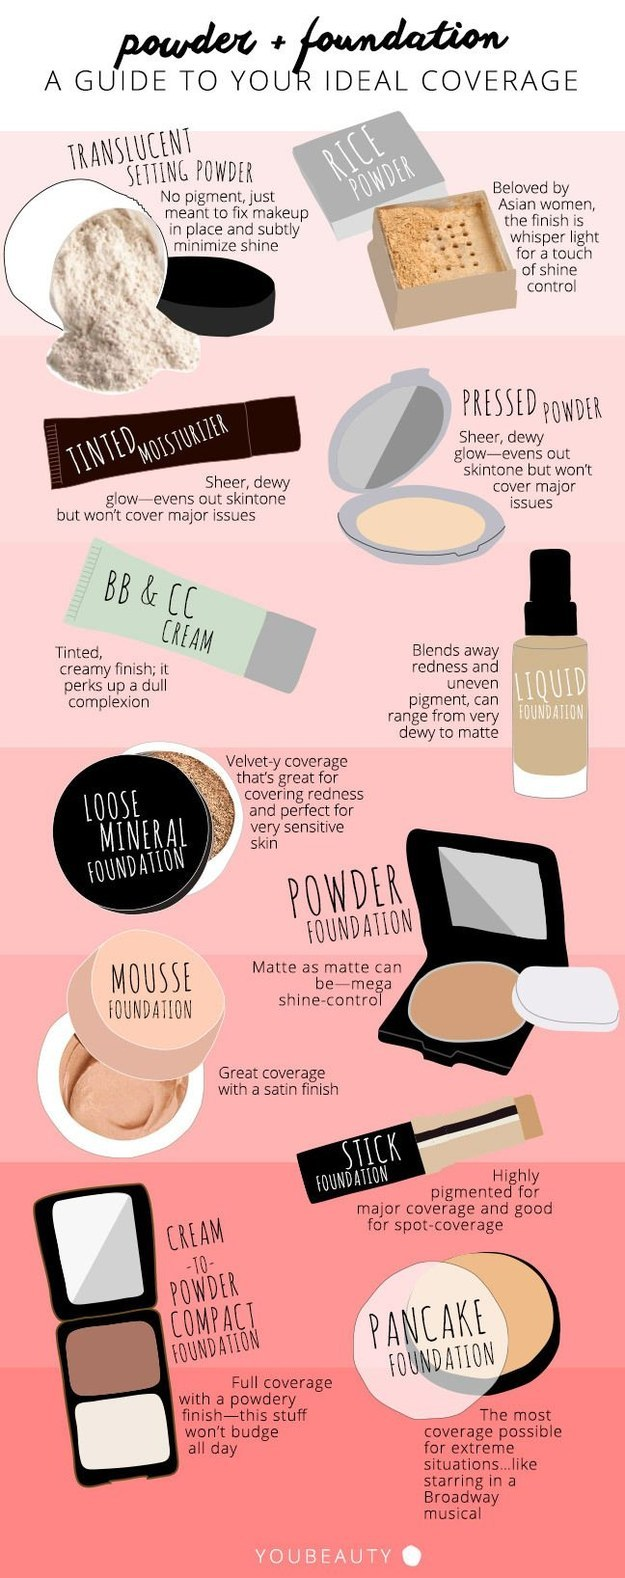 12 Brilliant Makeup Tips for Every Girl - Pretty Designs